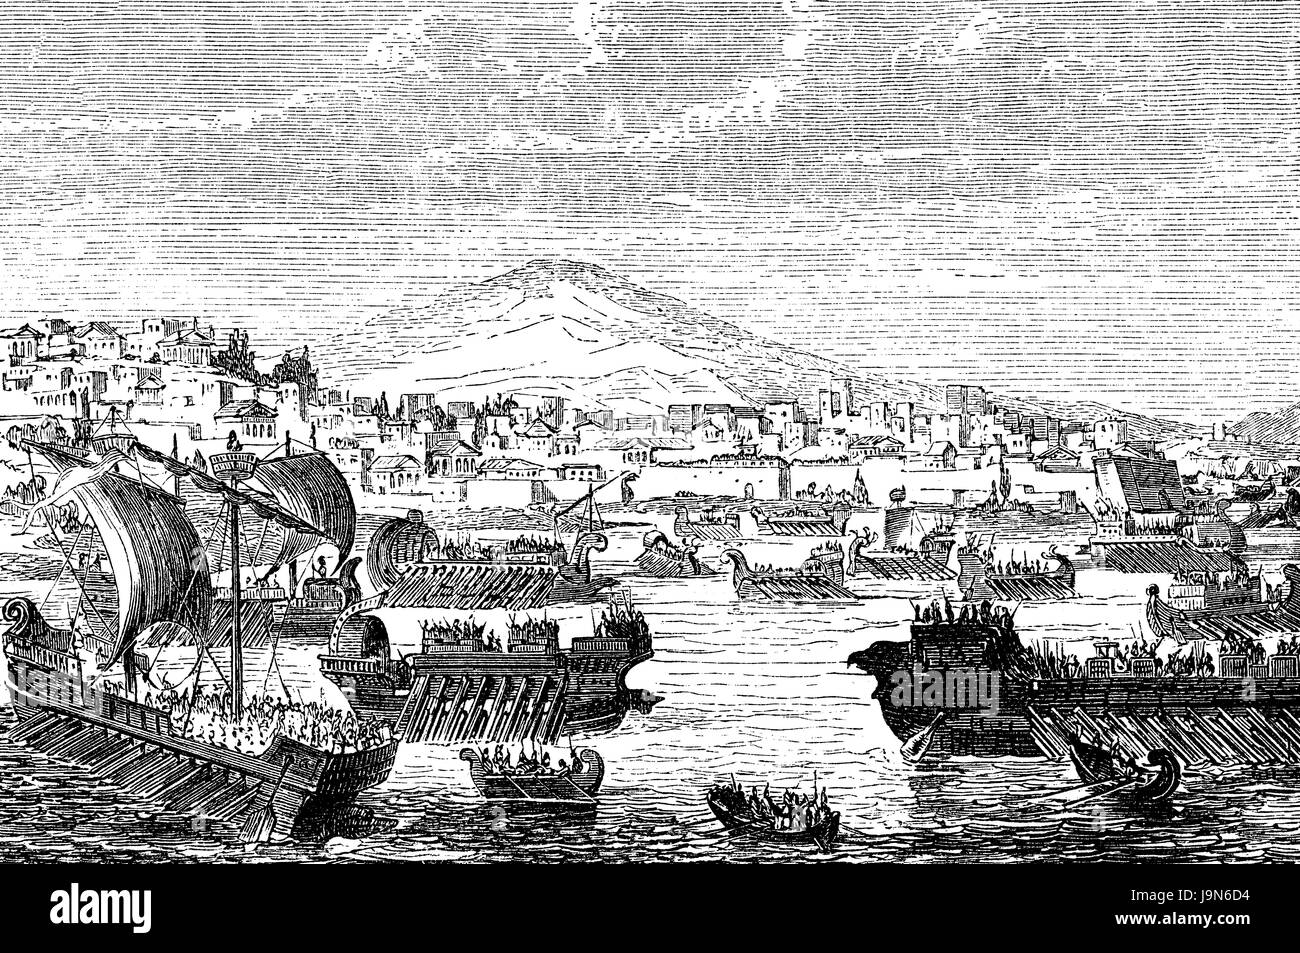 The Athenian fleet attacking Syracuse in Sicily, 415 BC, Peloponnesian War - Stock Image